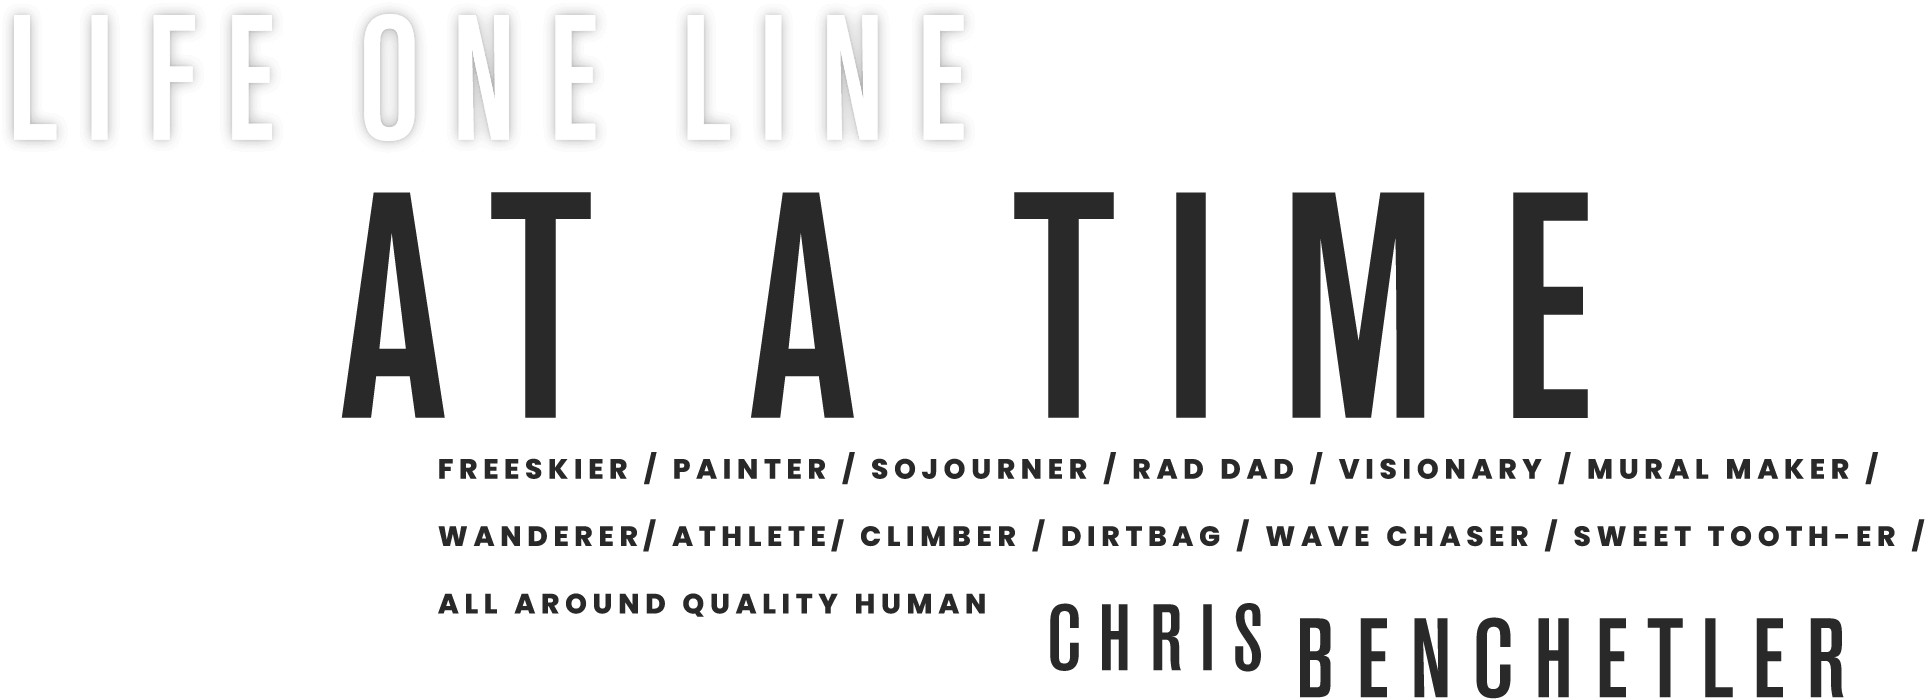 Life one line at time